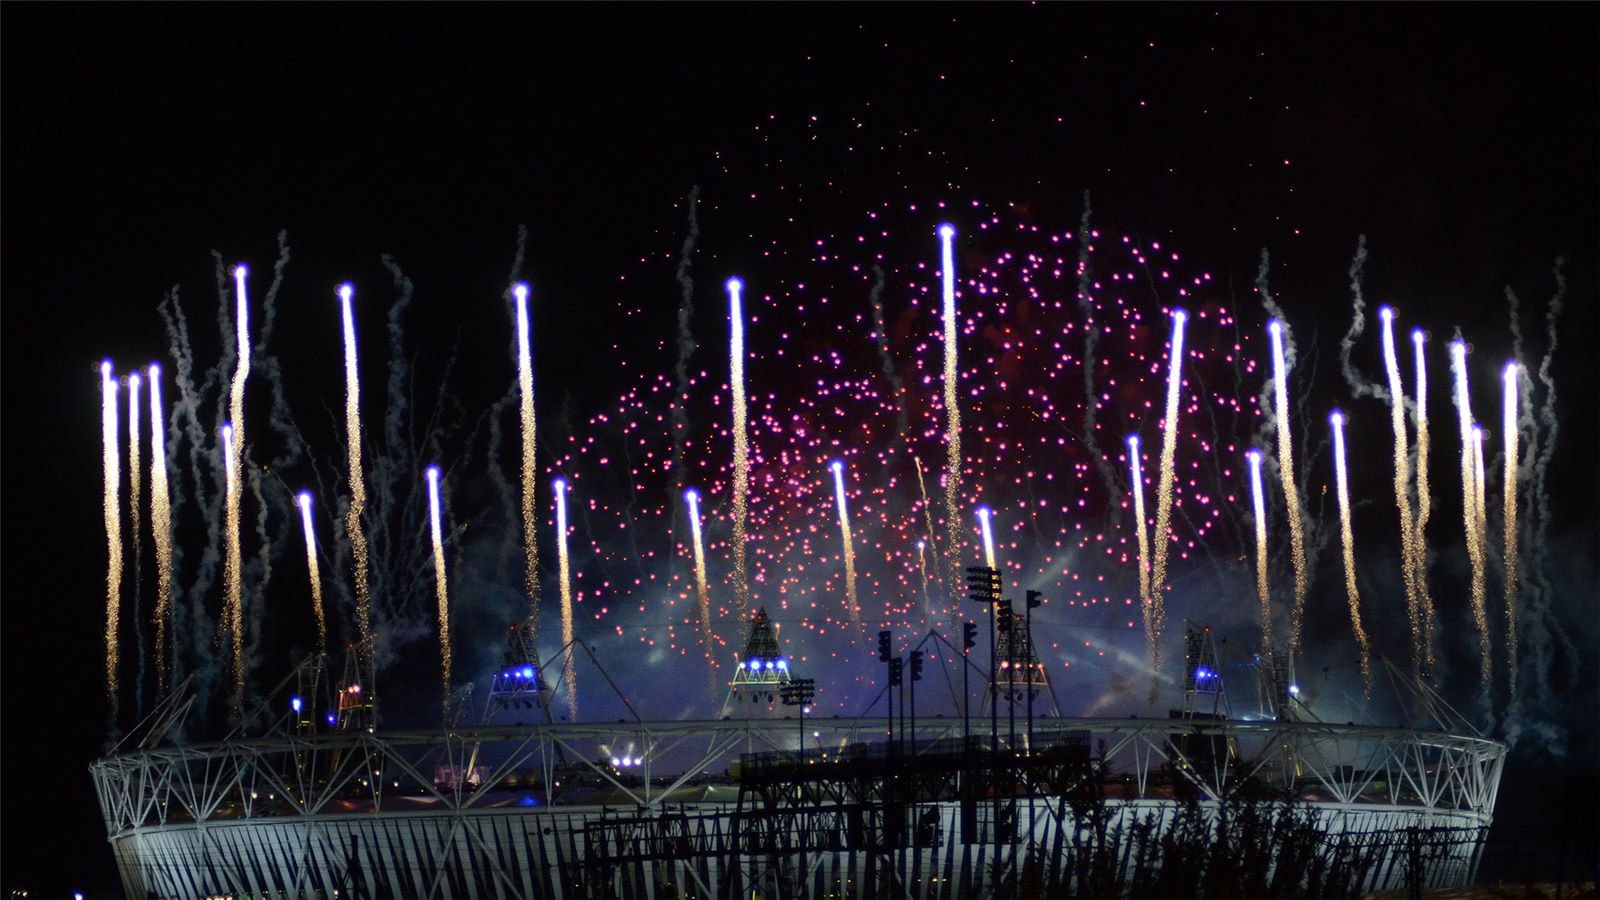 View of the Fireworks at the London 2012 Olympics - Mace Group